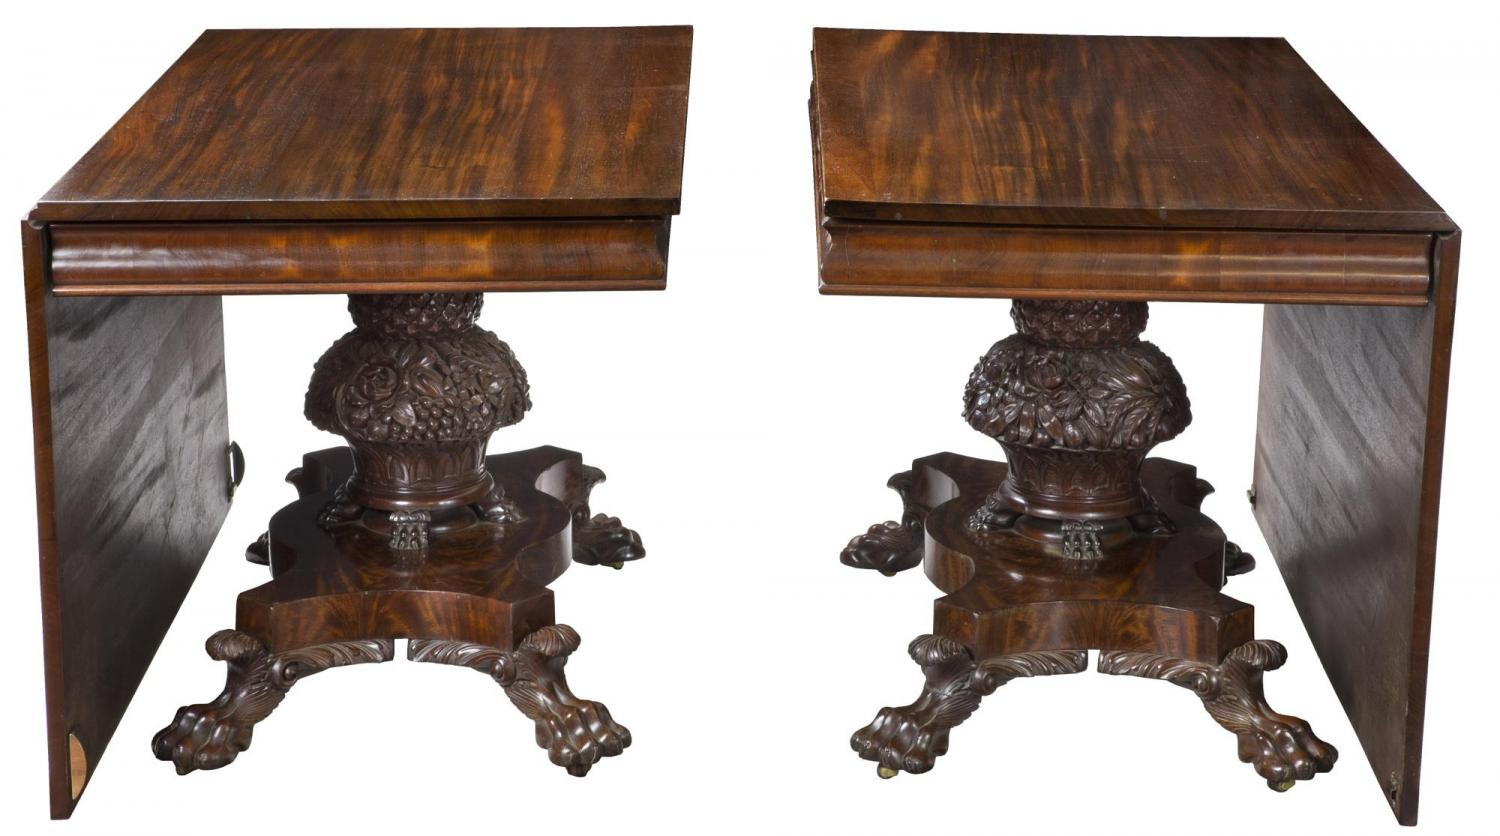 A Monumental Pedestal Classical Mahogany Dining Room Table Philadelphia Possibly Anthony Quervelle C1830